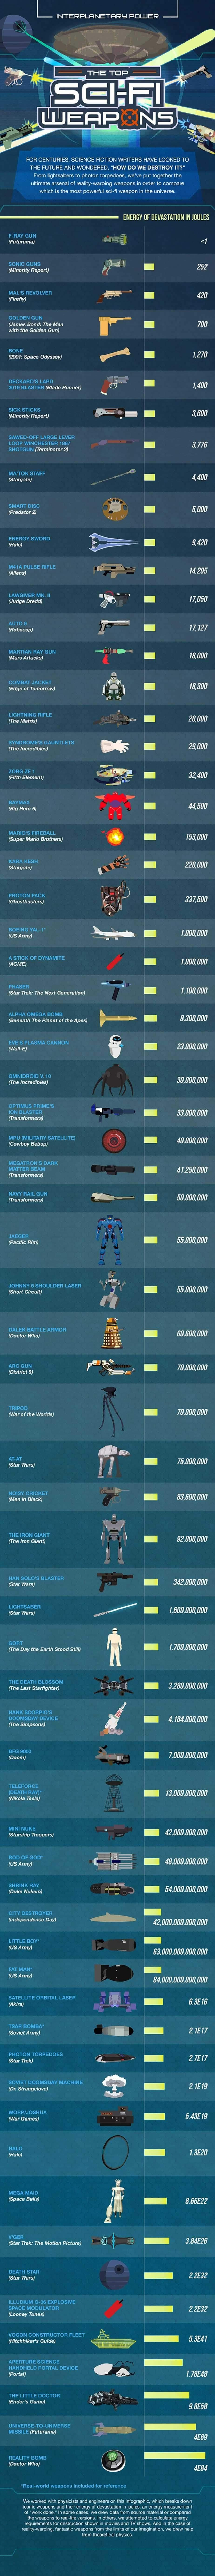 What are scientific fiction's top guns? #infographic